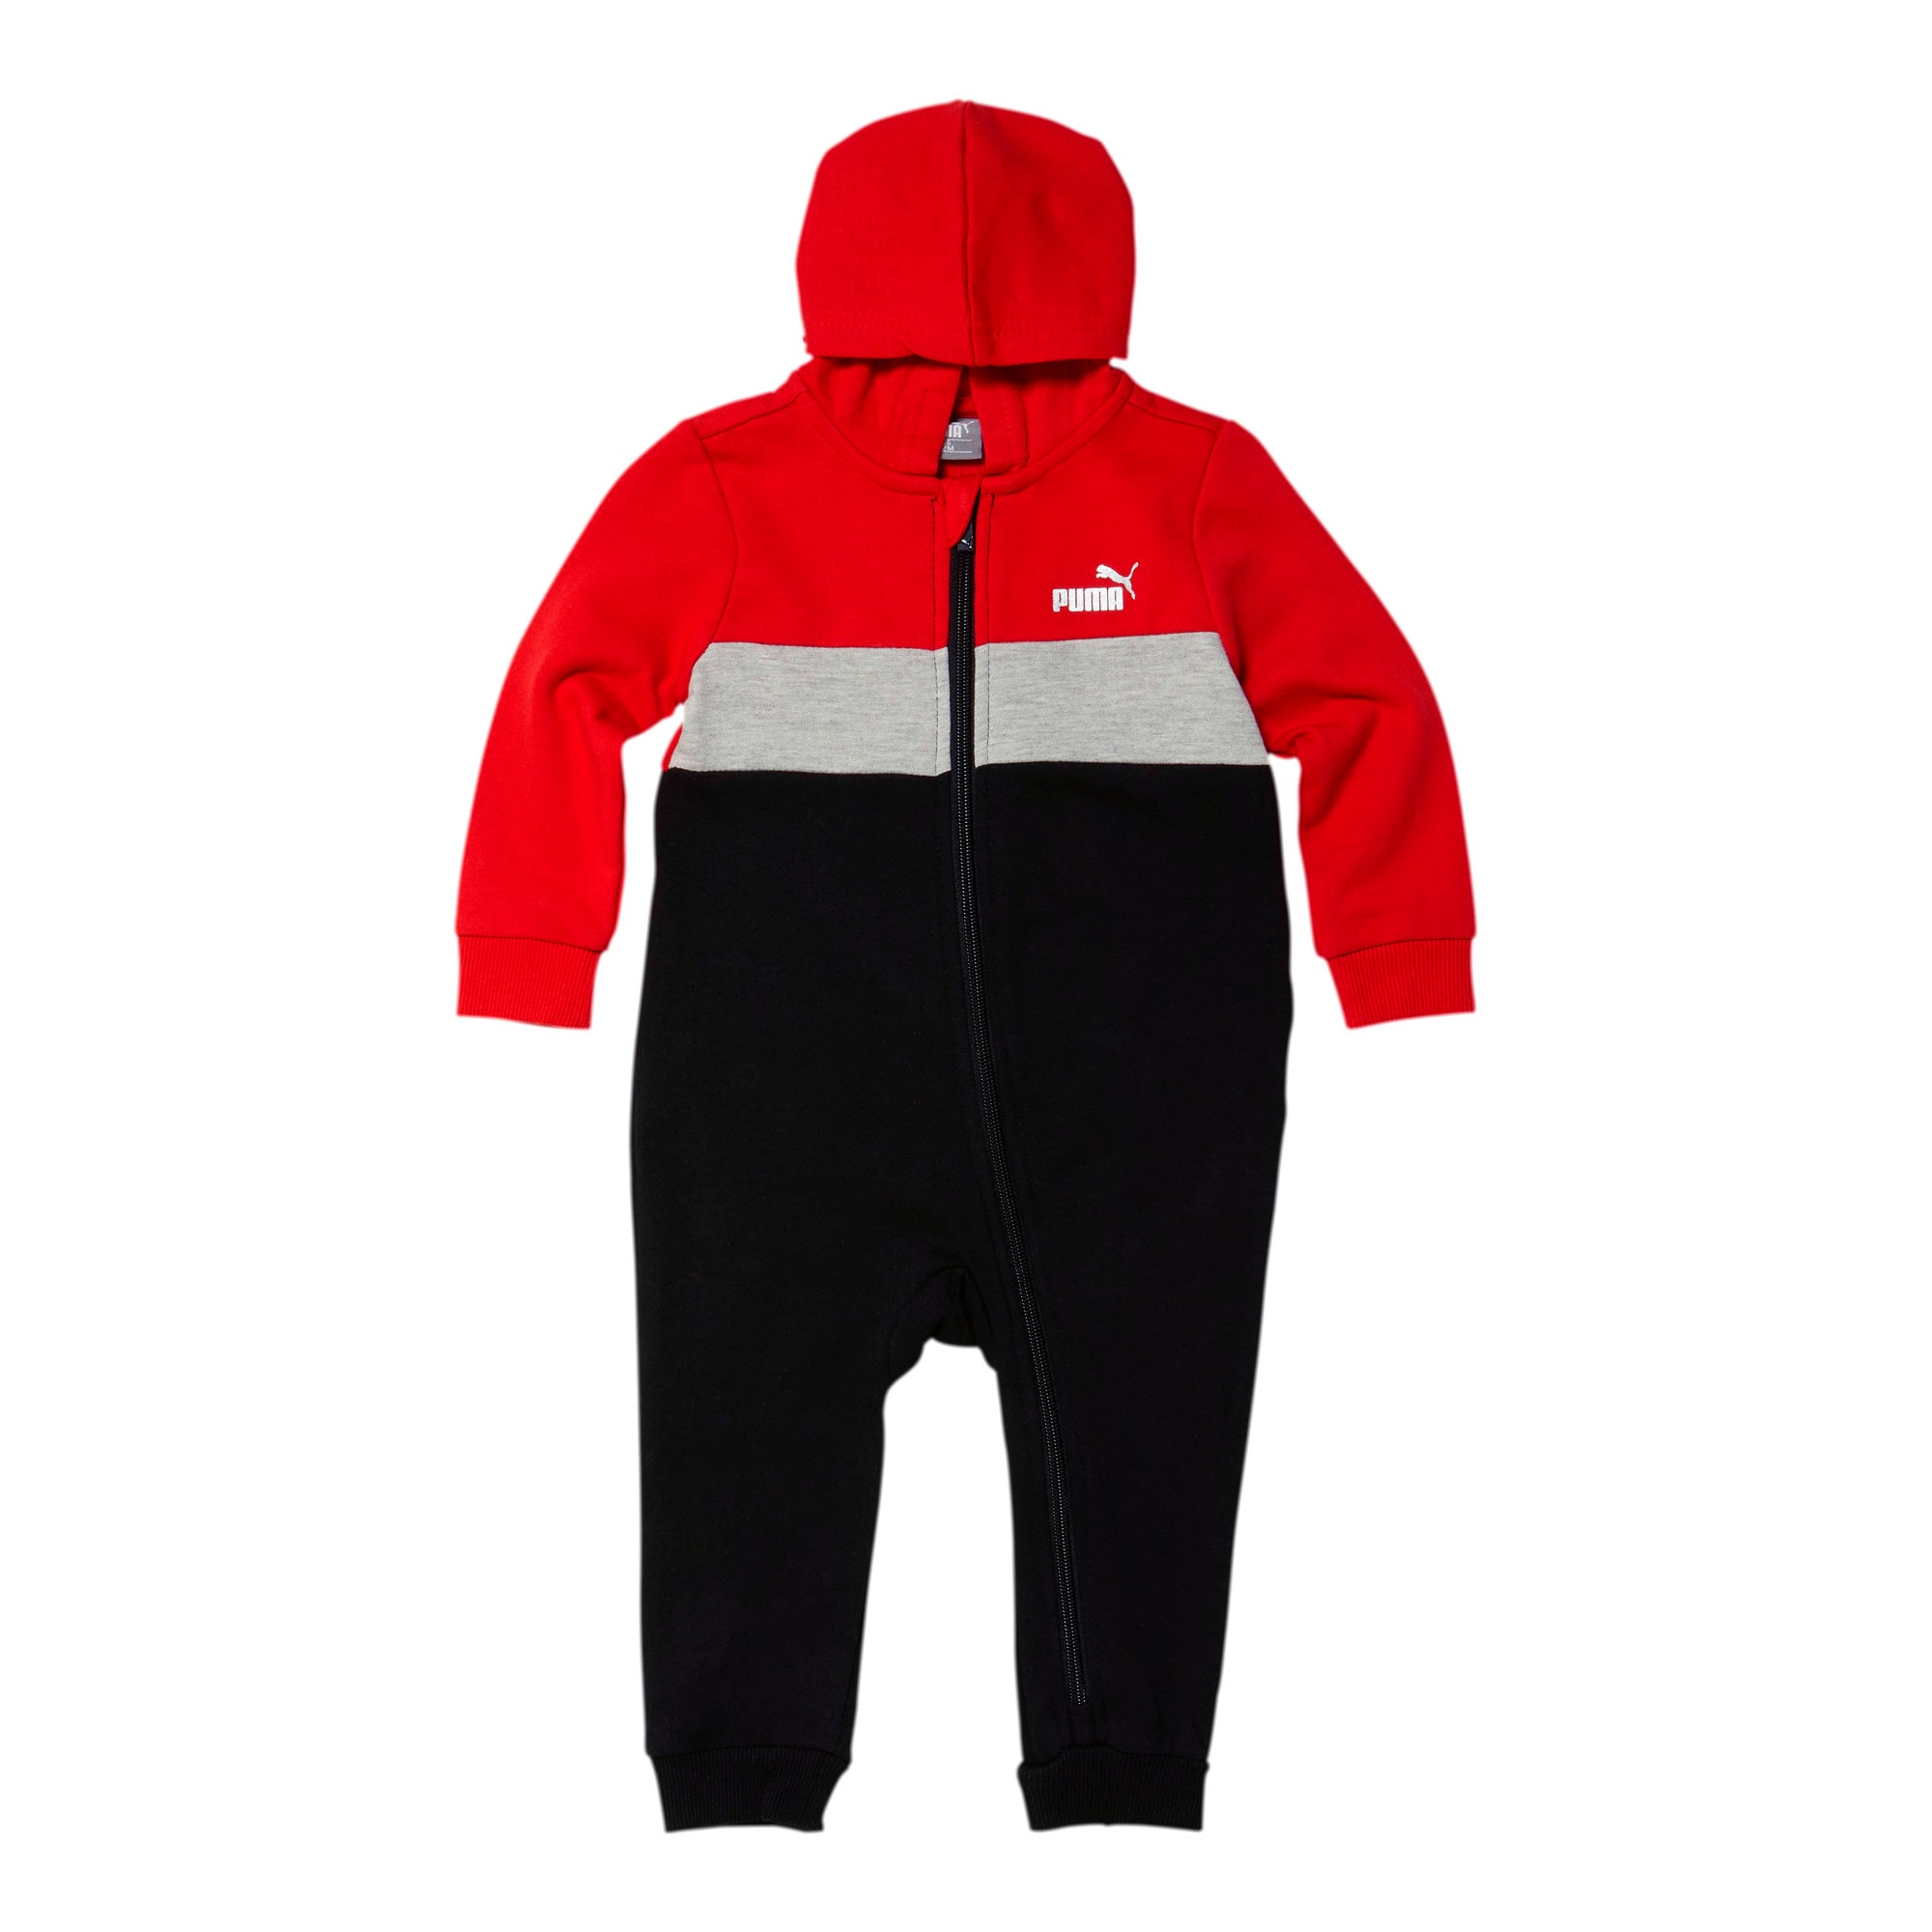 Thumbnail 1 of Colorblocked Fleece Infant Zip Up Hoodie Coverall, HIGH RISK RED, medium